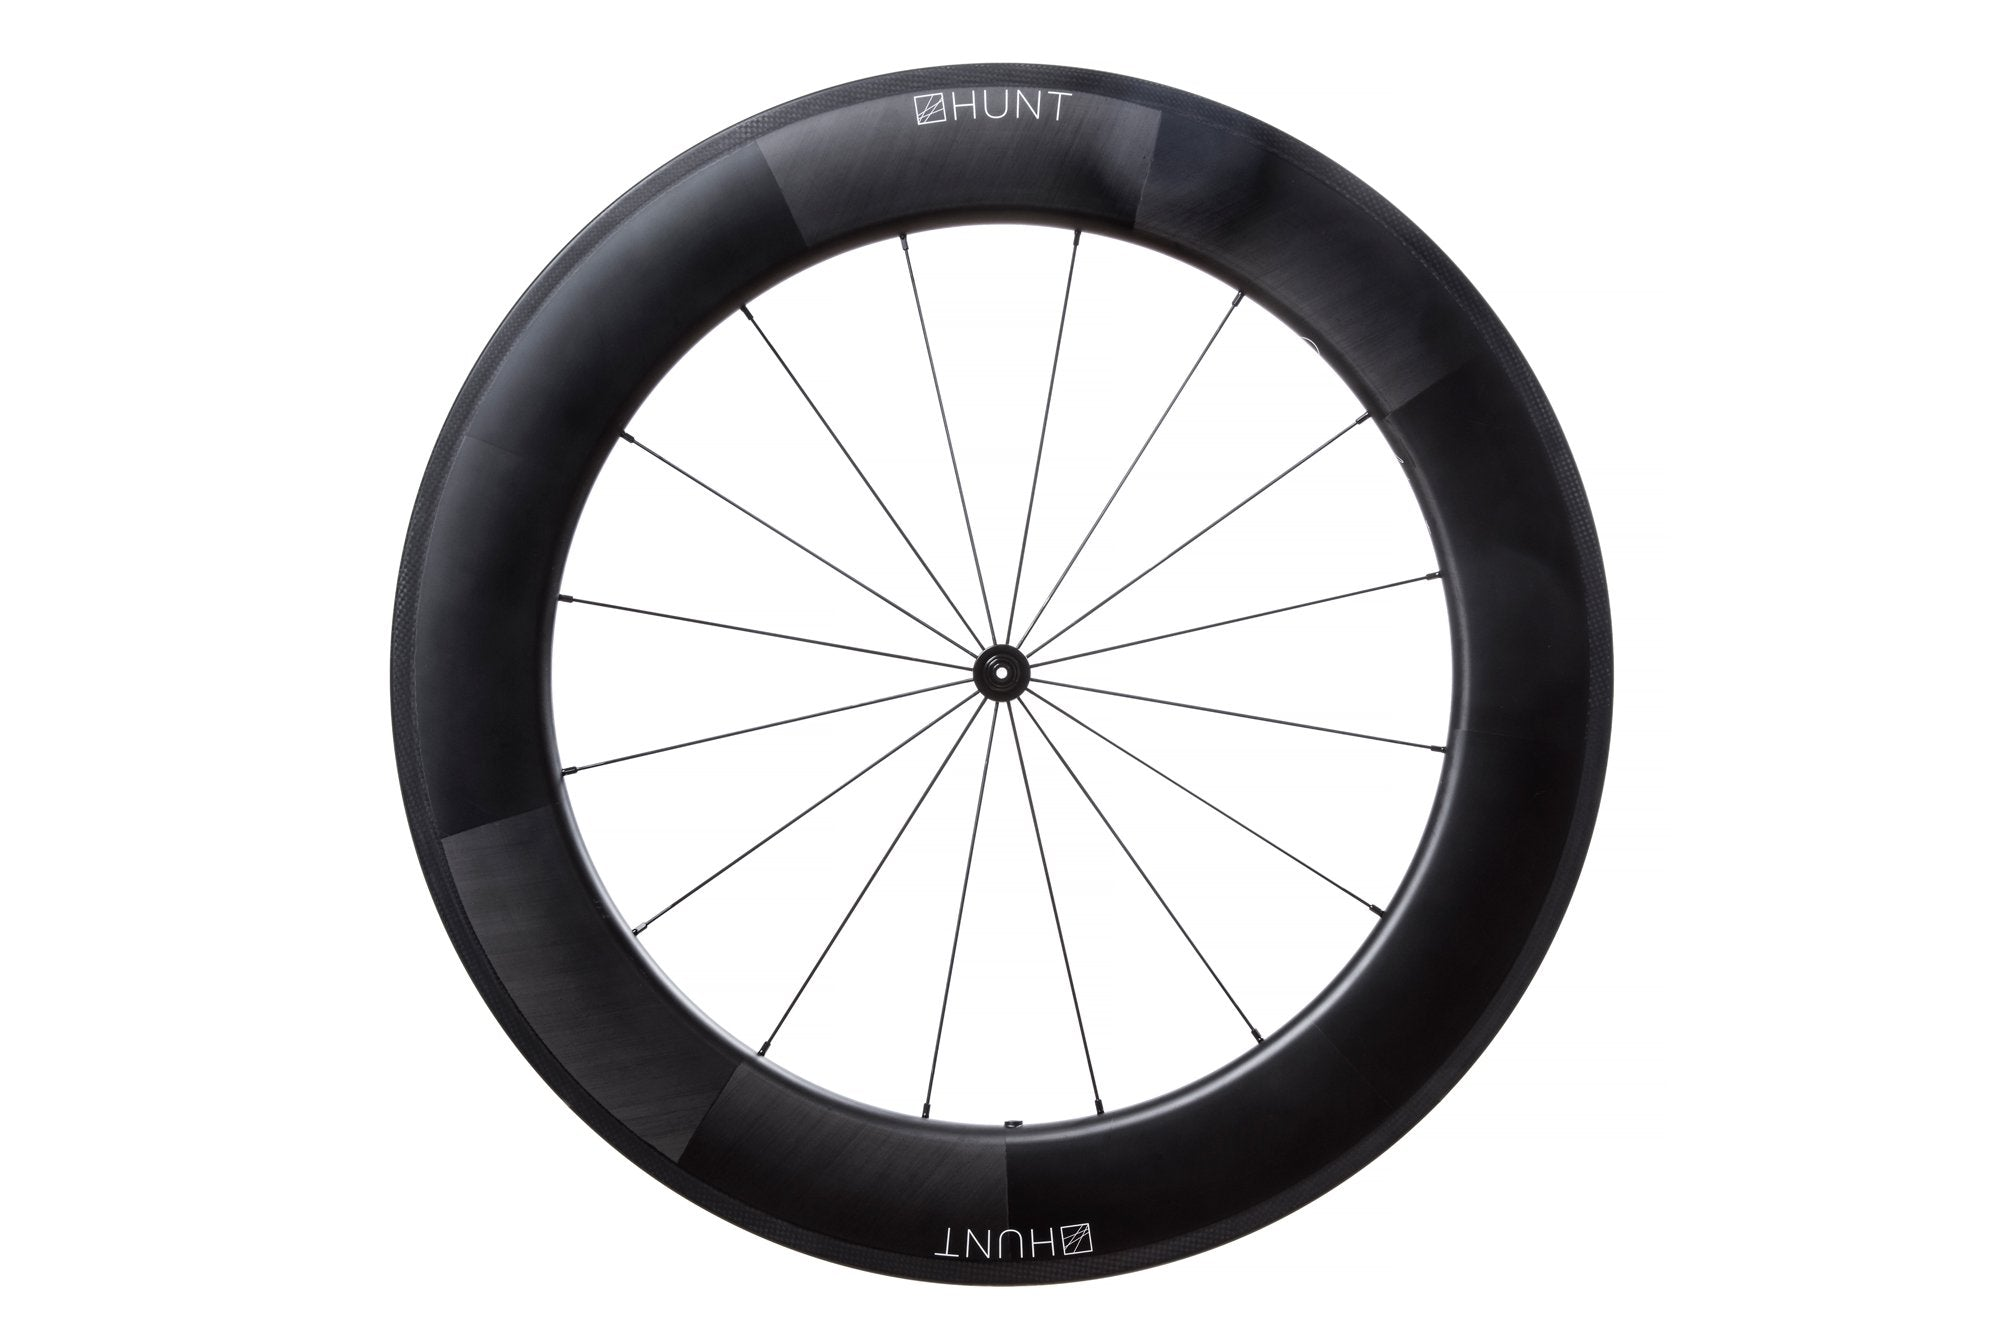 <h1>AERODYNAMICIST PROFILE</h1><i>Designed around a 19mm internal rim width optimised for a 25c tyre (but will of course work without compromise with both 23c and 28c tyres). Naturally, as with all of our rims, they feature a hooked tyre retention design for safety, and are both fully ETRTO-compatible and tubeless-ready.</i>